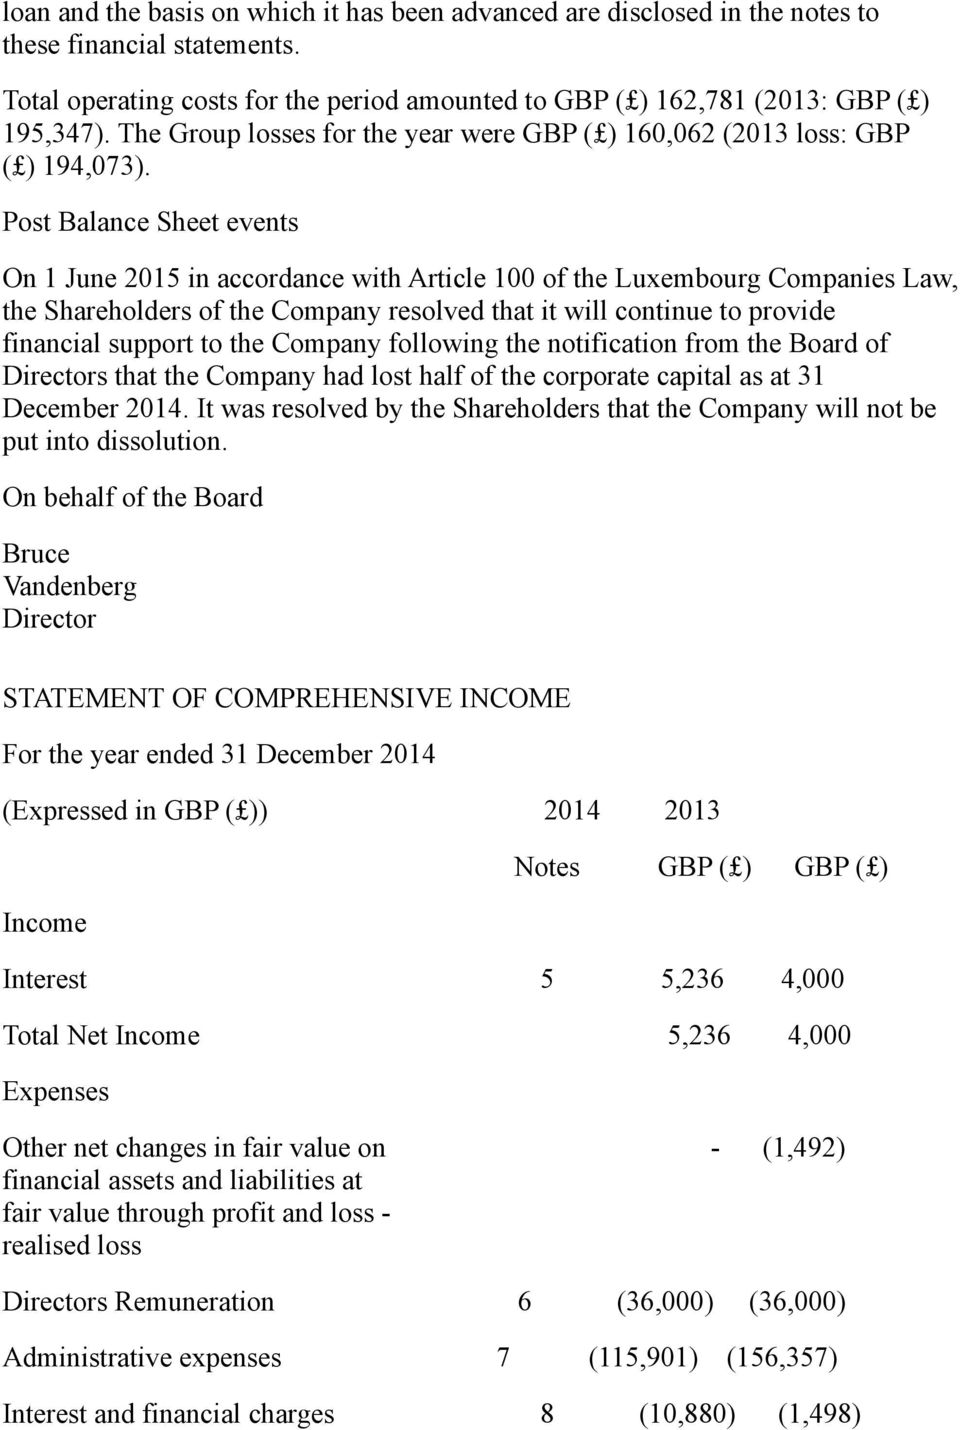 Post Balance Sheet events On 1 June 2015 in accordance with Article 100 of the Luxembourg Companies Law, the Shareholders of the Company resolved that it will continue to provide financial support to